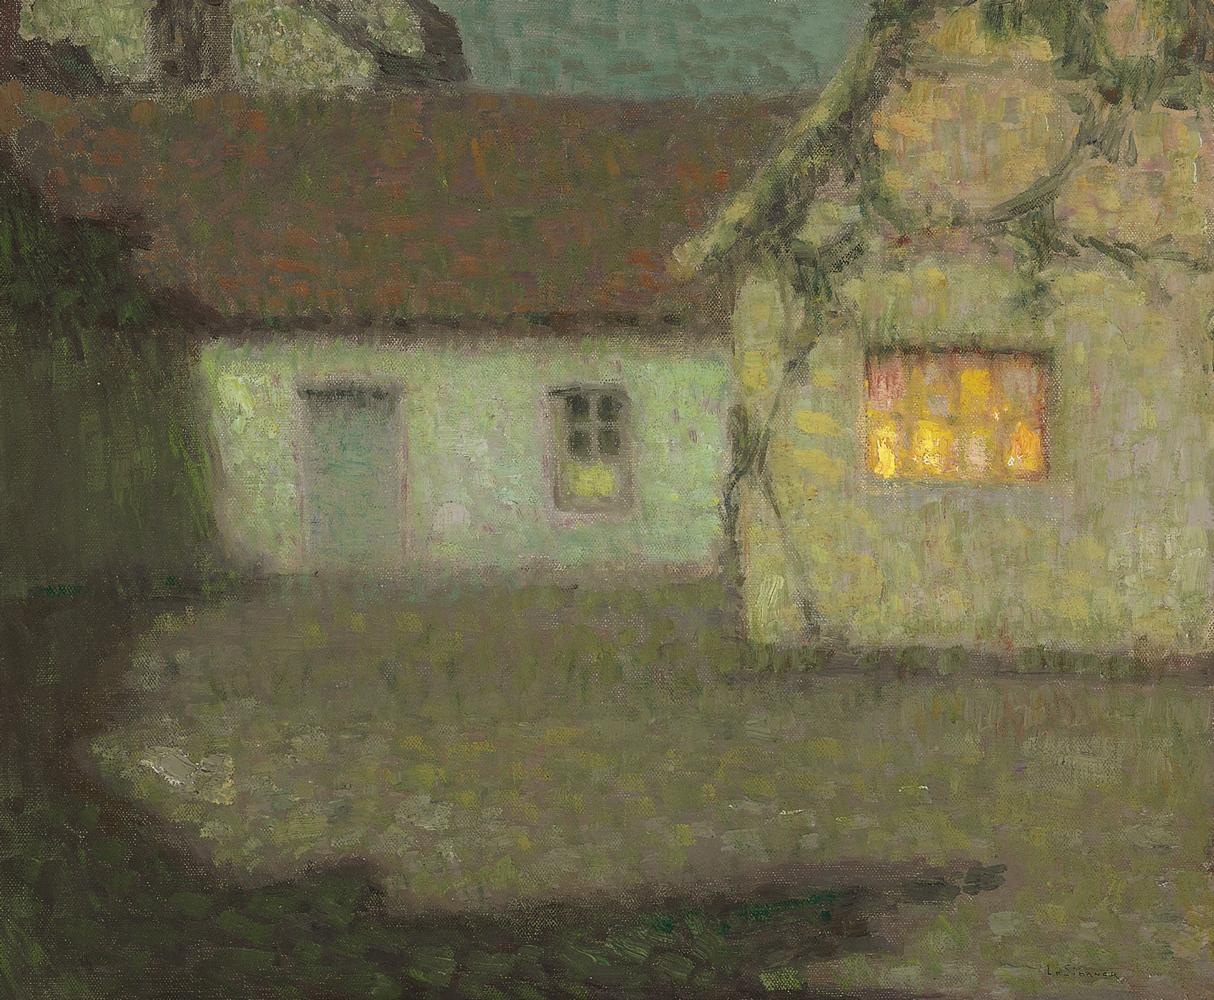 1455862822-the-courtyard-of-the-house-in-the-jmoonlight-gerberoy-1931.jpg